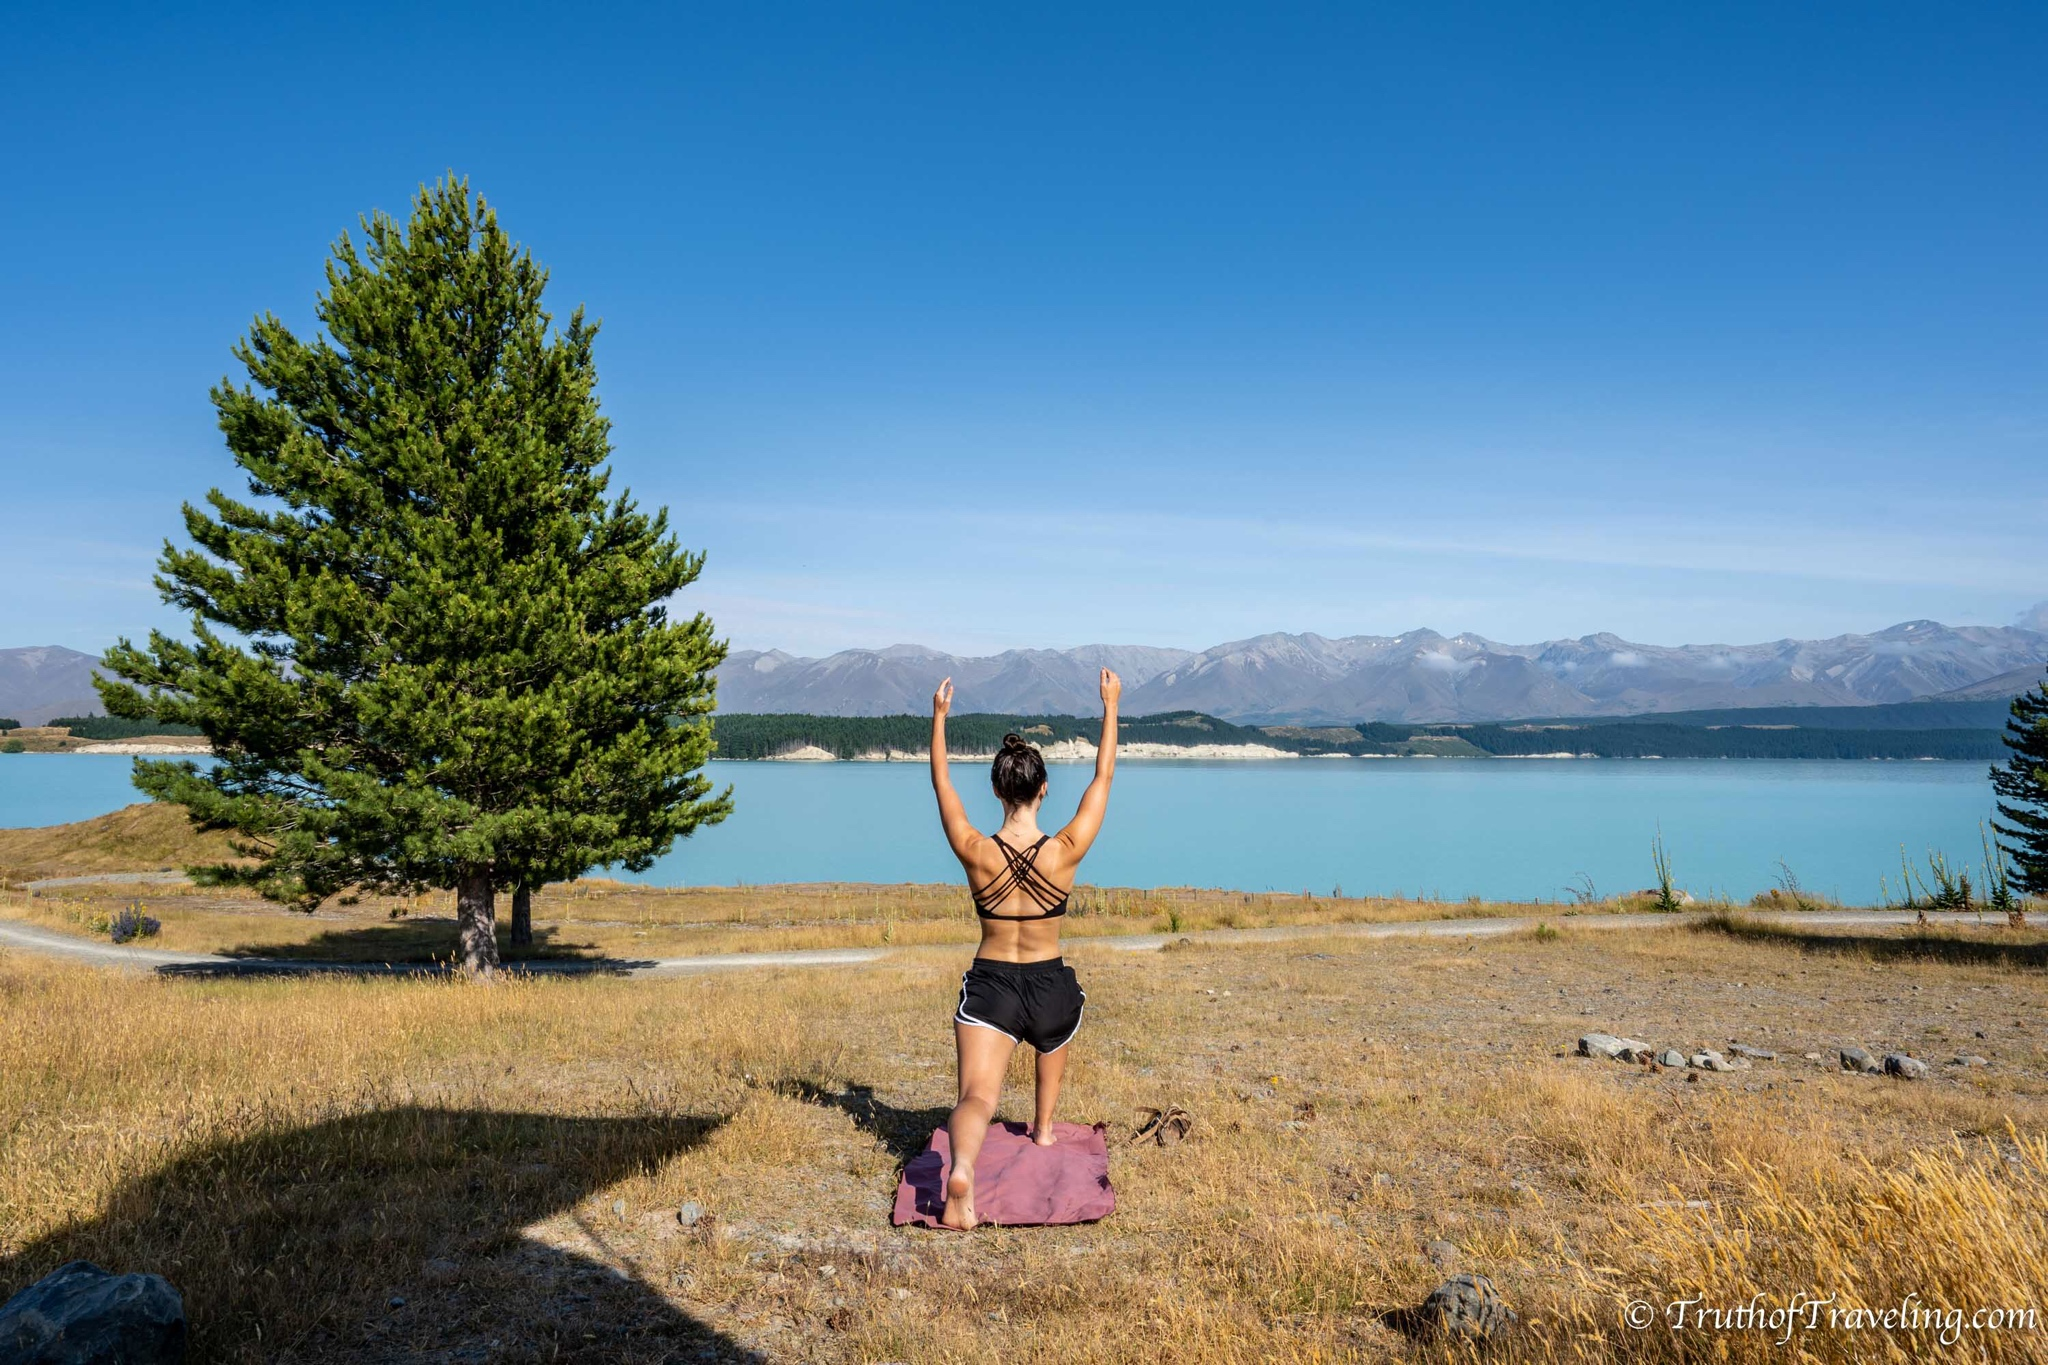 [image] Some places make it easier to get up and moving than others. Morning yoga at Lake Pukaki, New Zealand!